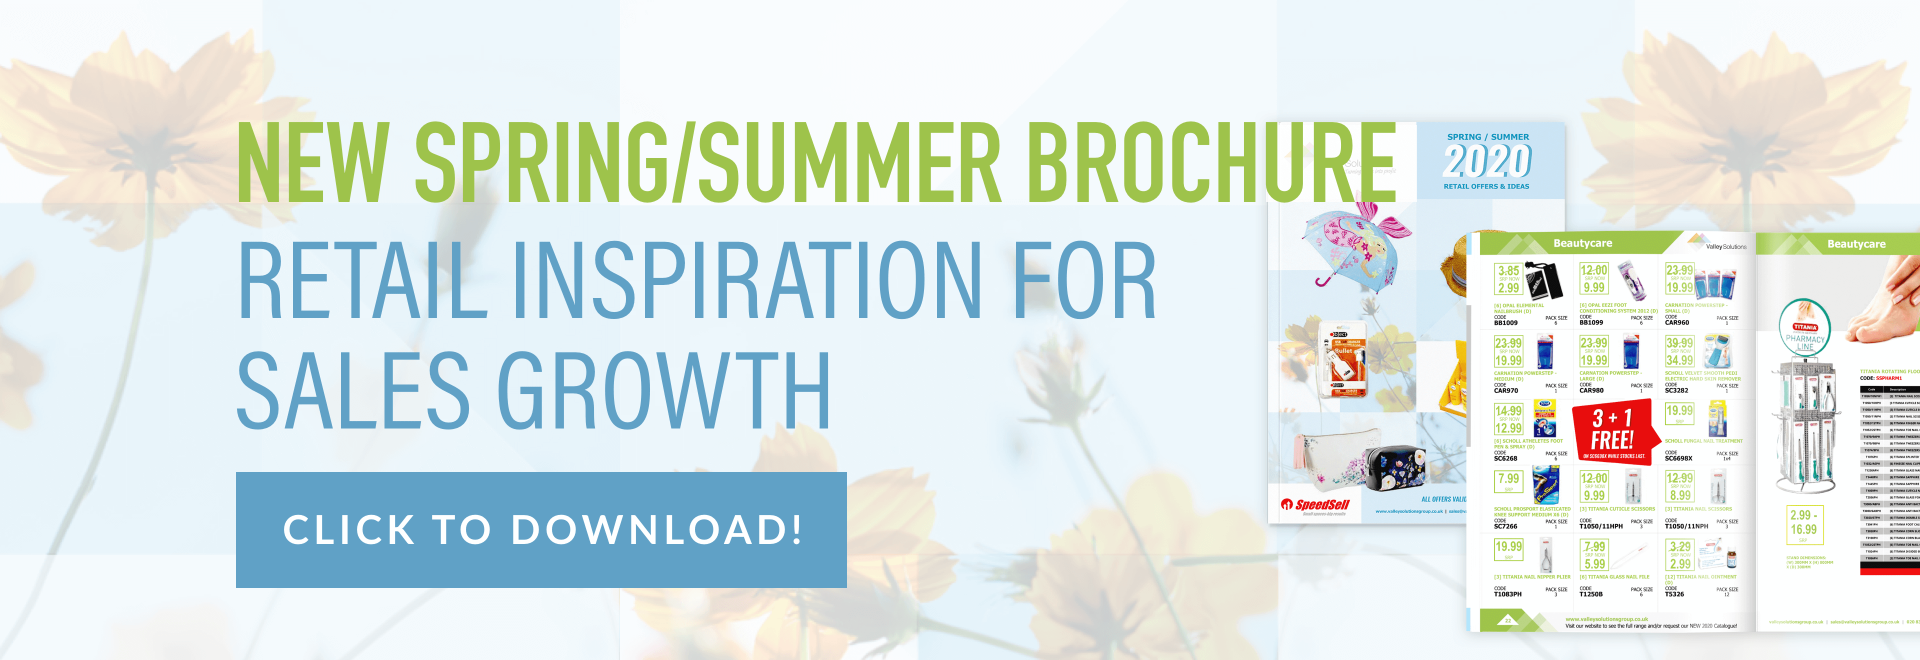 New spring/summer brochure. Retail inspiration for sales growth. Click to download